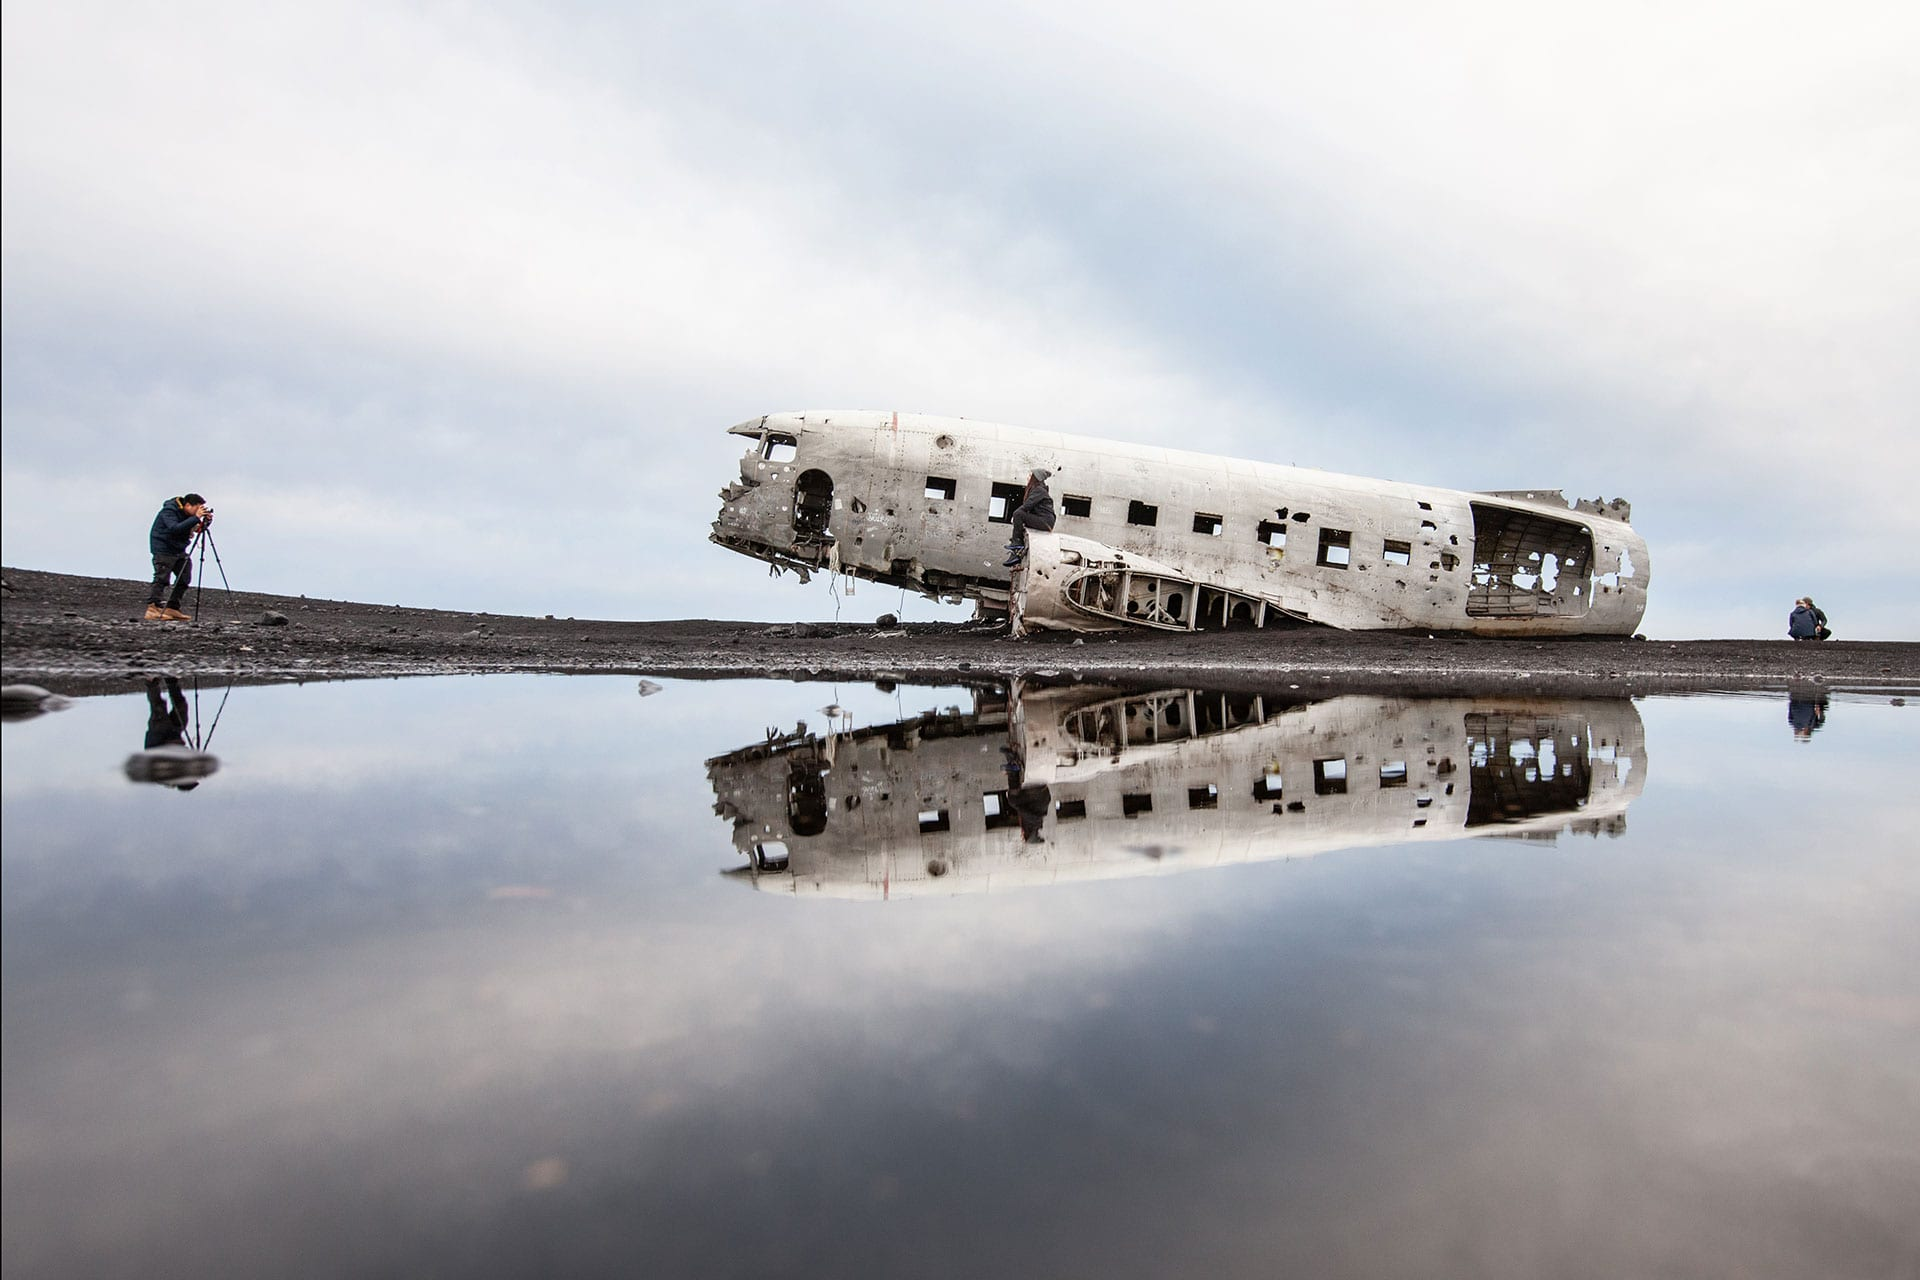 The Plane Wreck Shuttle, photo by Björgvin Hilmarsson